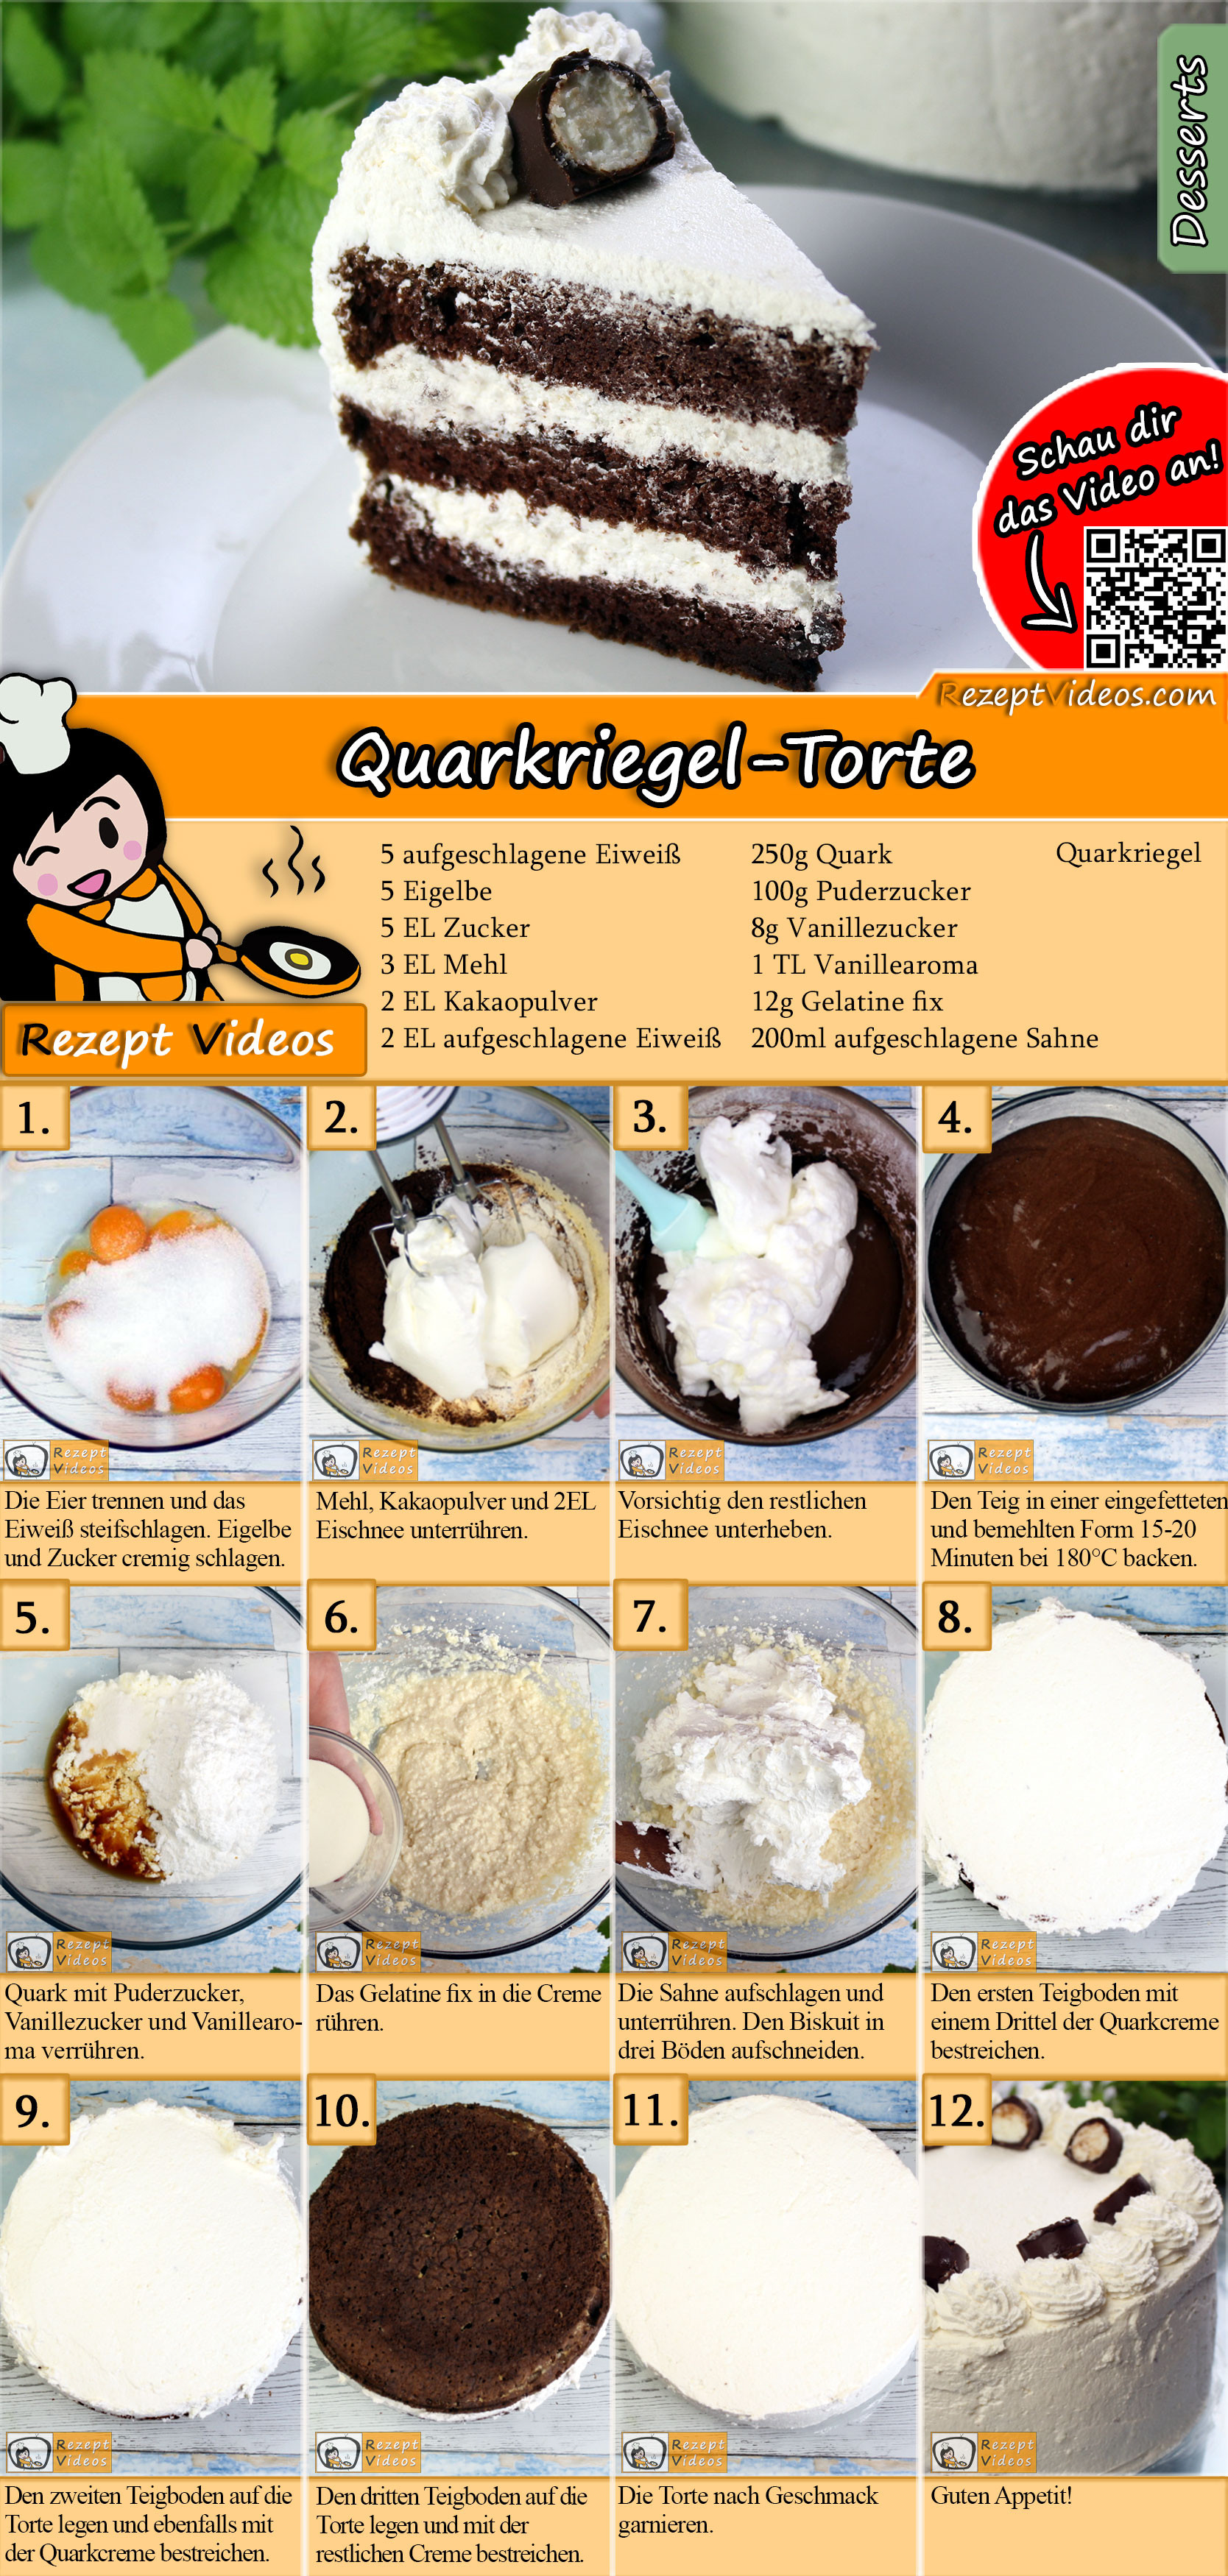 Quarkriegel-Torte Rezept mit Video